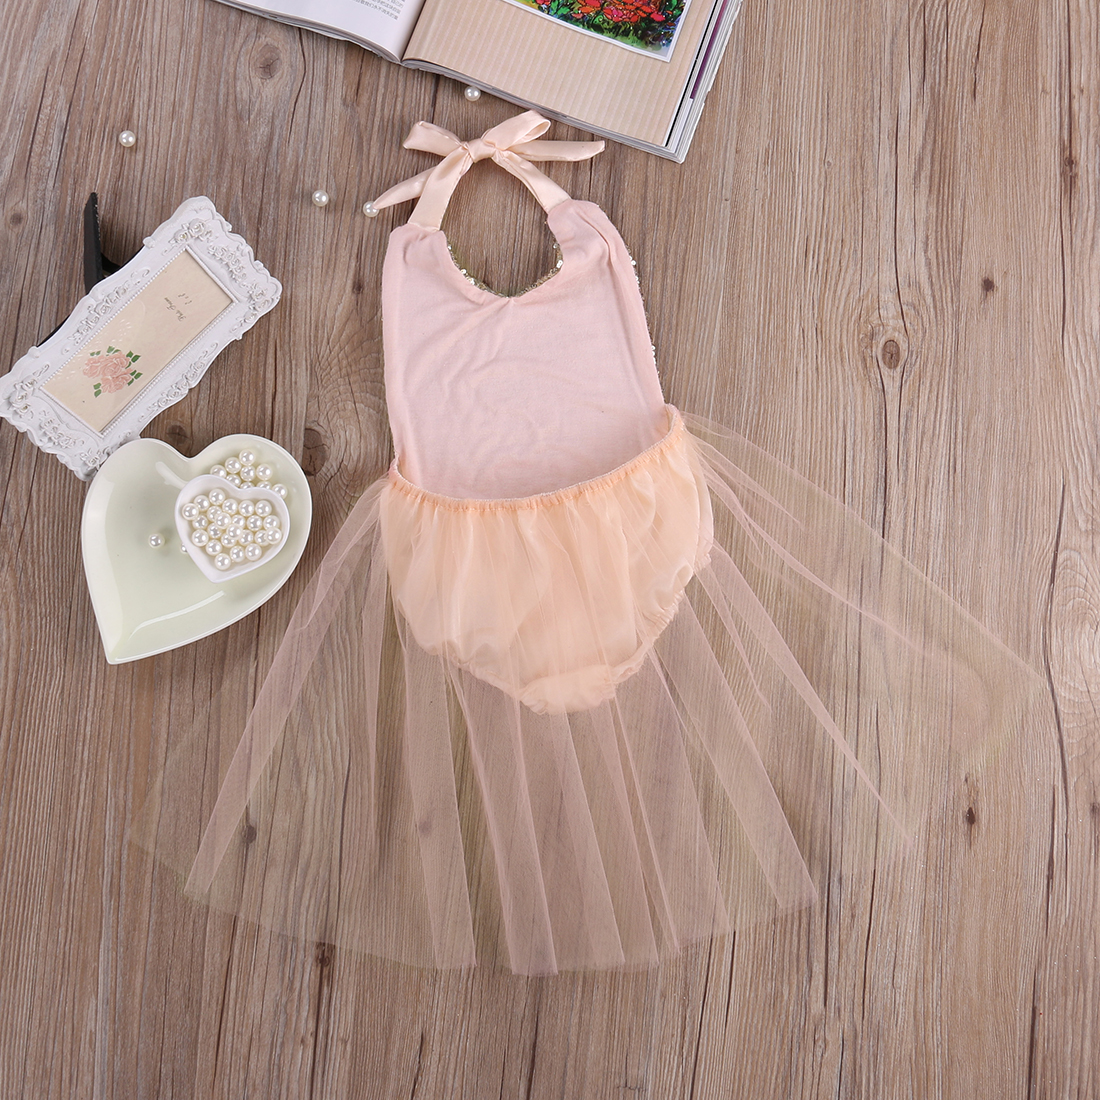 16 New Princess Baby Girls Sequins Romper Summer Sunsuit Outfits Clothes 0-24M Newborn Baby Girl Clothes Set Overalls 5